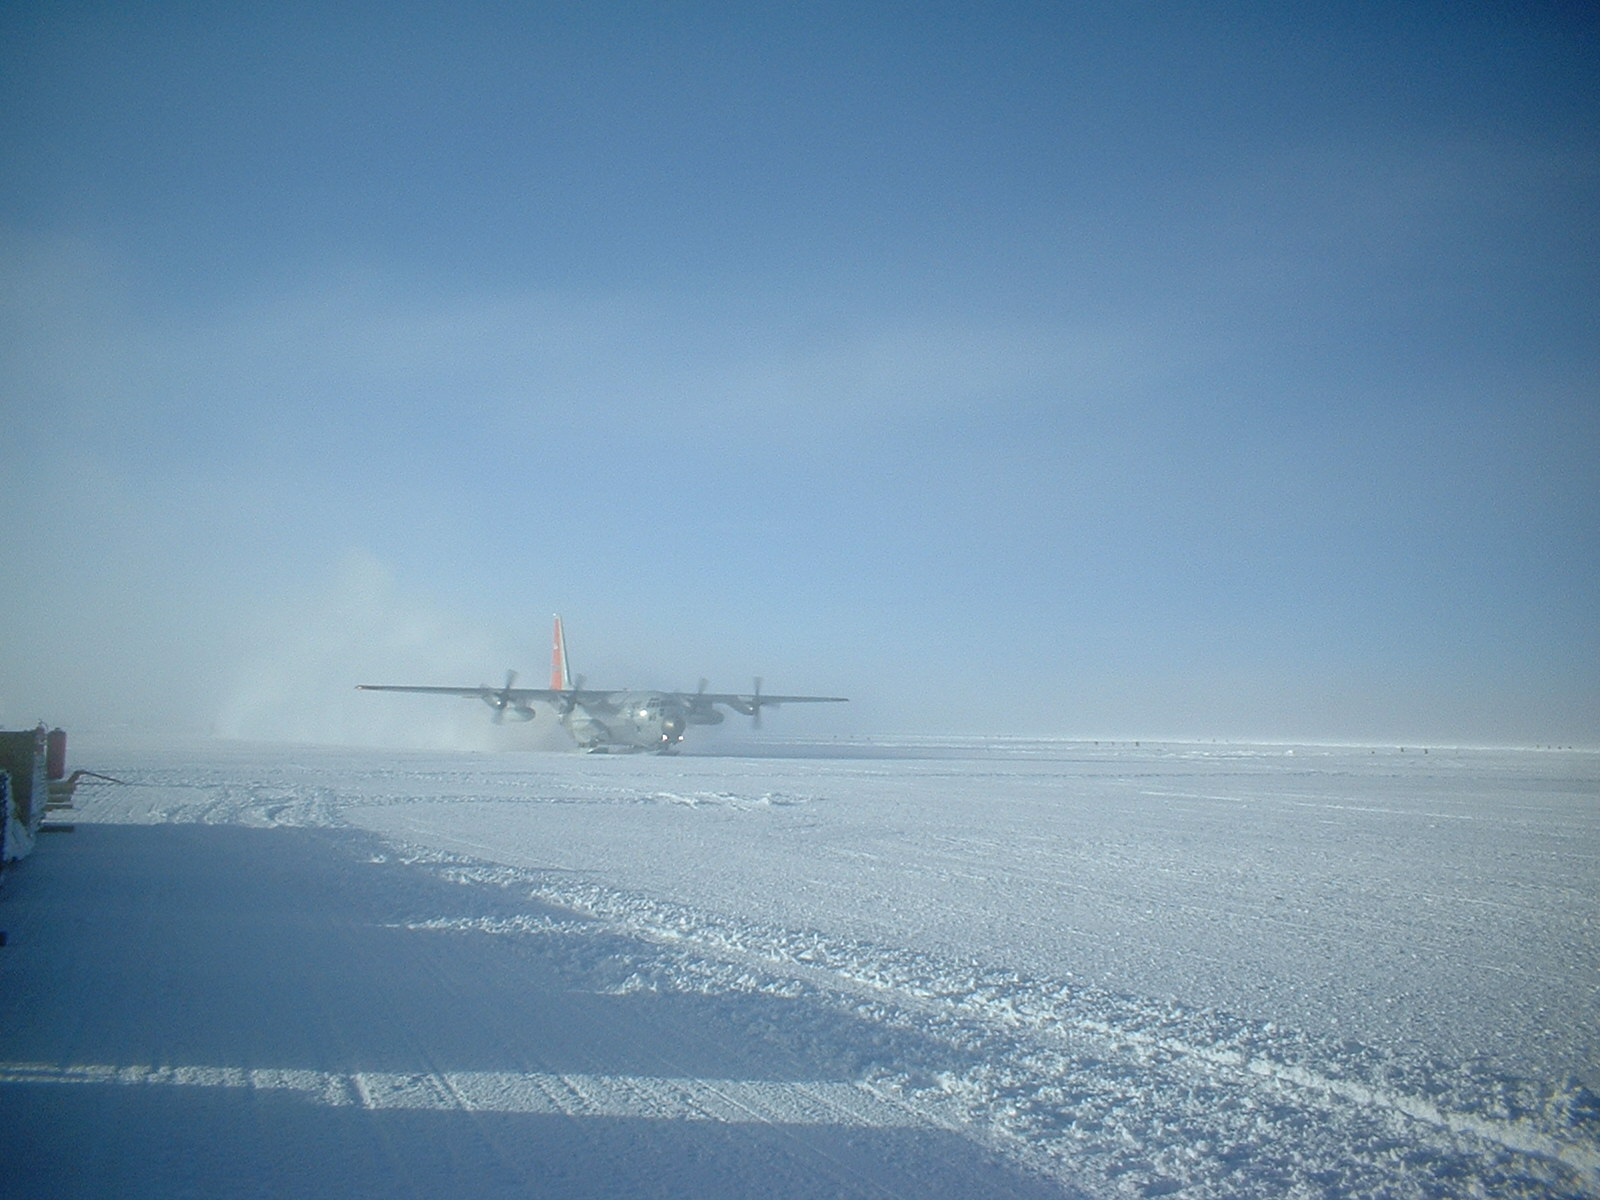 A C17 landing at South Pole's skiway.